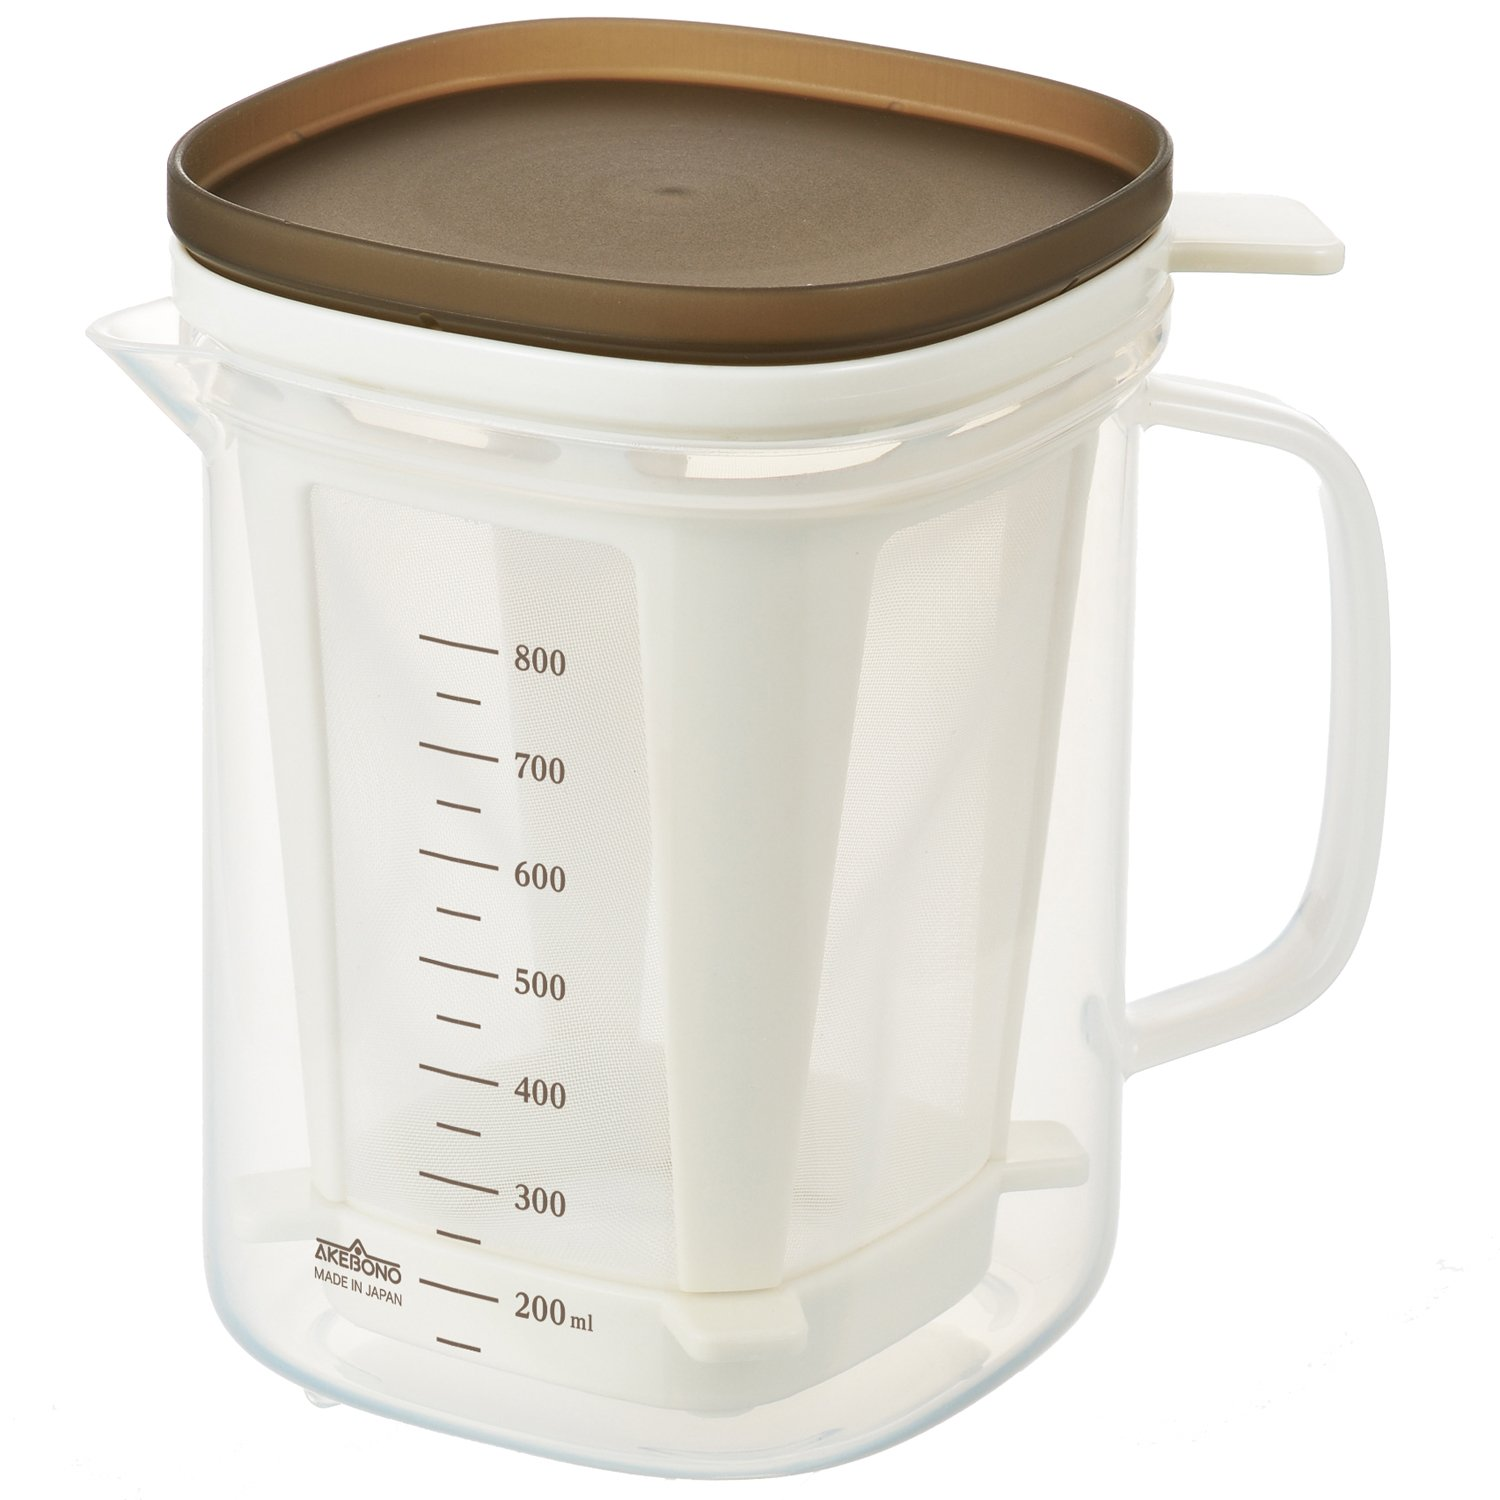 Easy Japanese Dashi Soup Stock Maker For Microwave Oven By Akebono Akebonno Coffee Re 1510 Kitchen Home